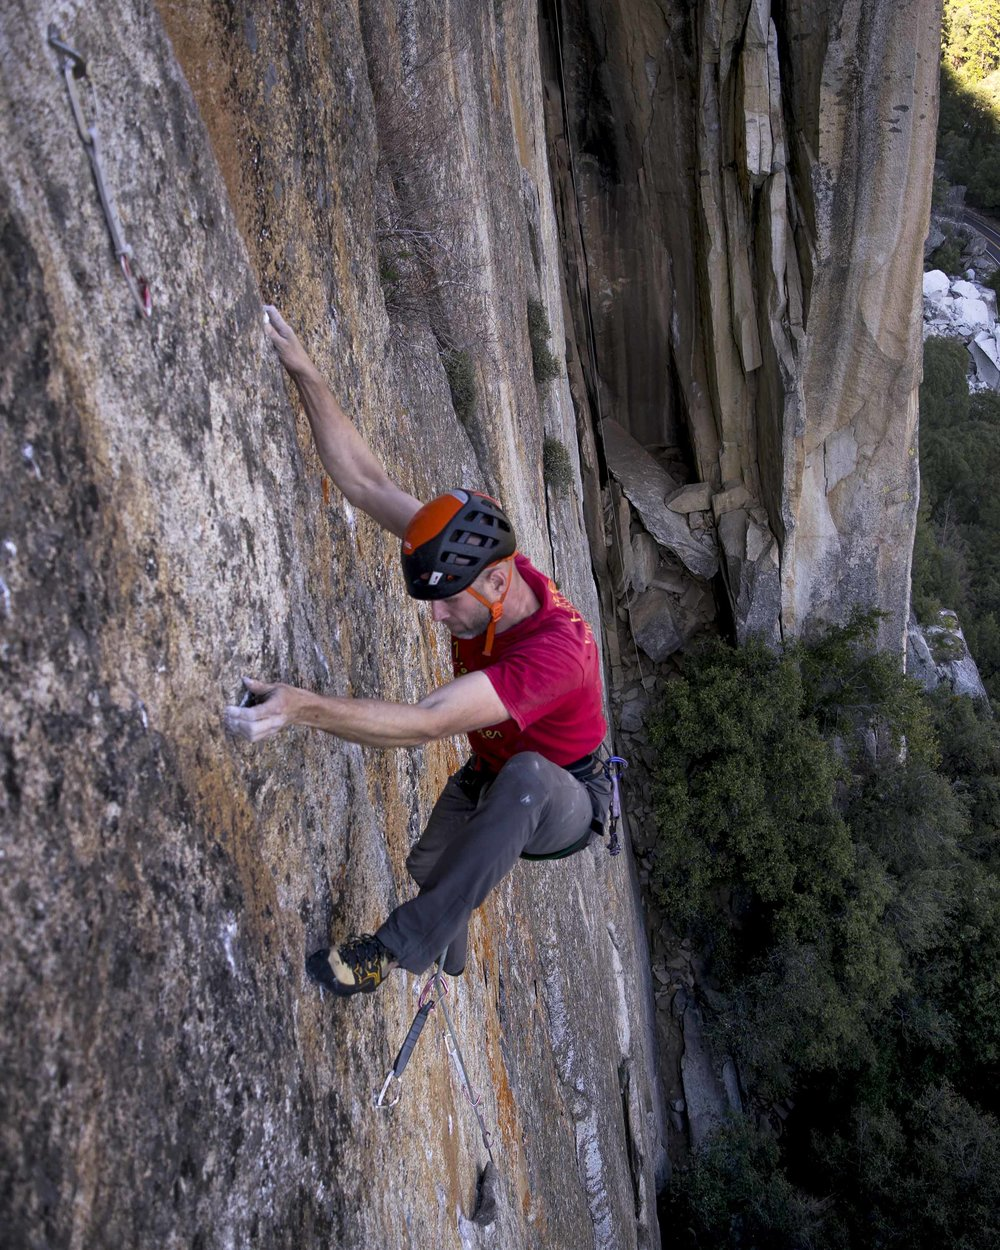 00-2 Mark makes his way up Tennessee Wall in Yosemite National Park